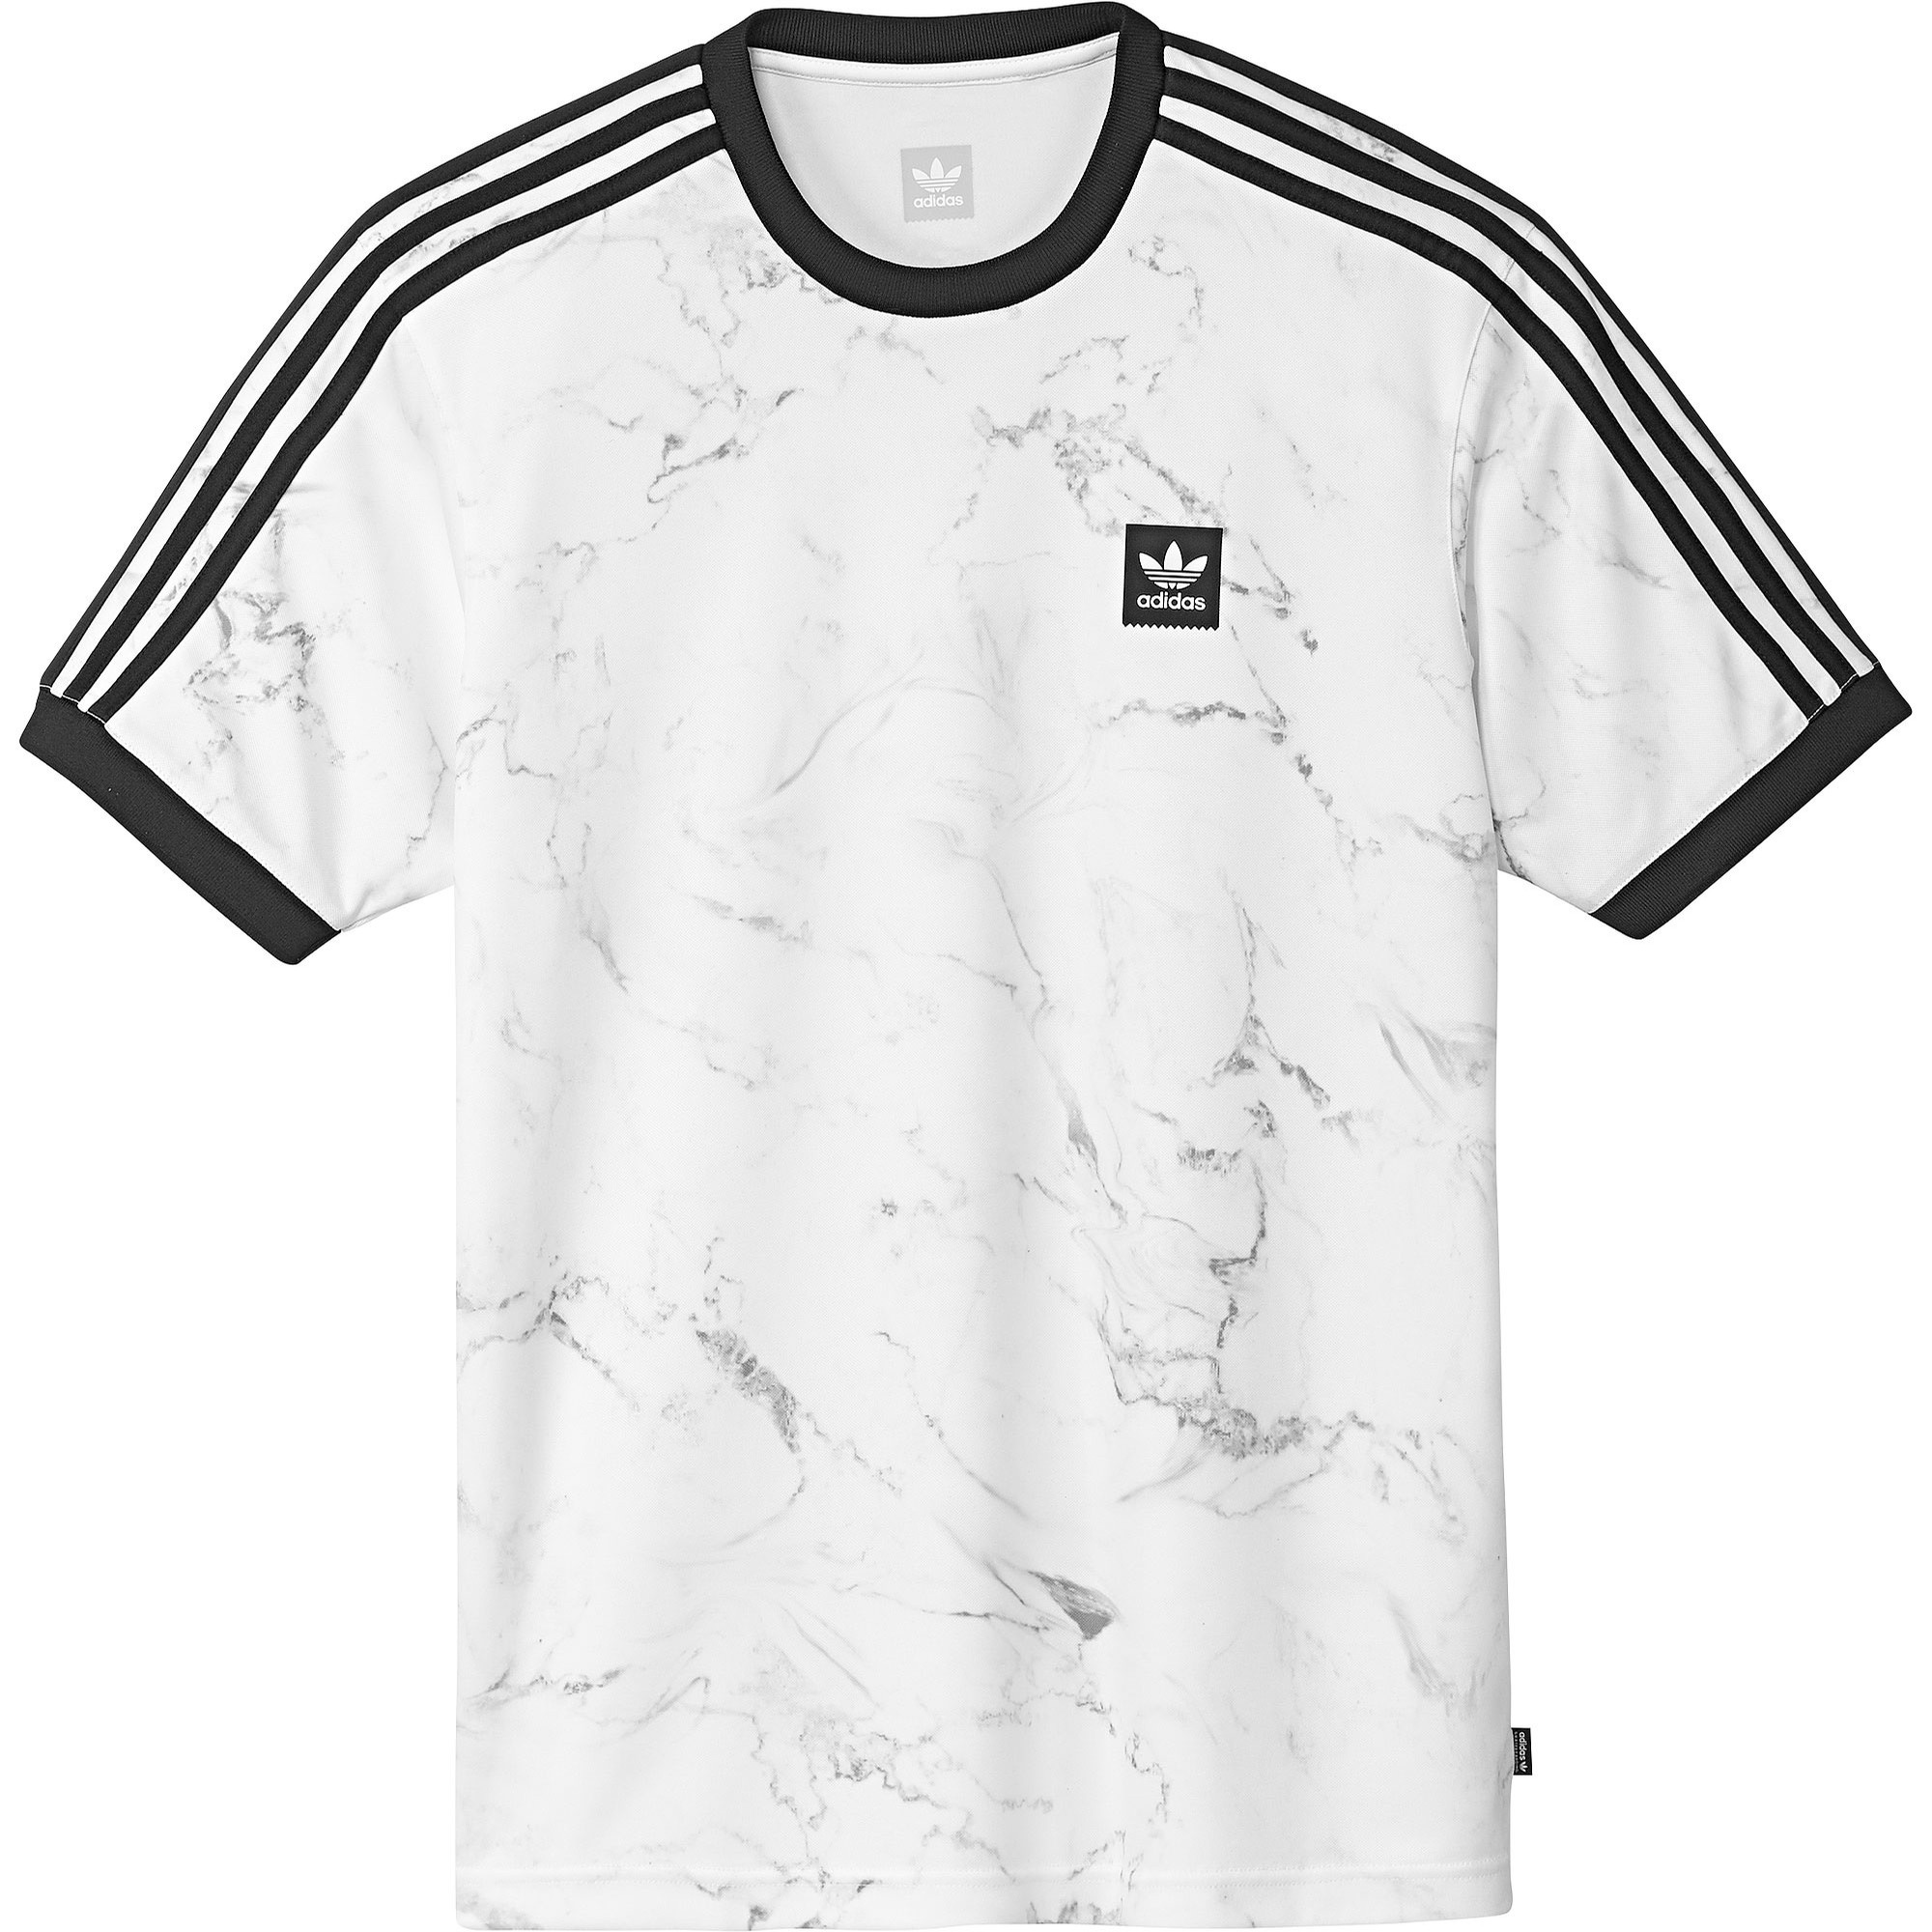 Marble Clima Club Jersey (White/Solid Grey/Black)